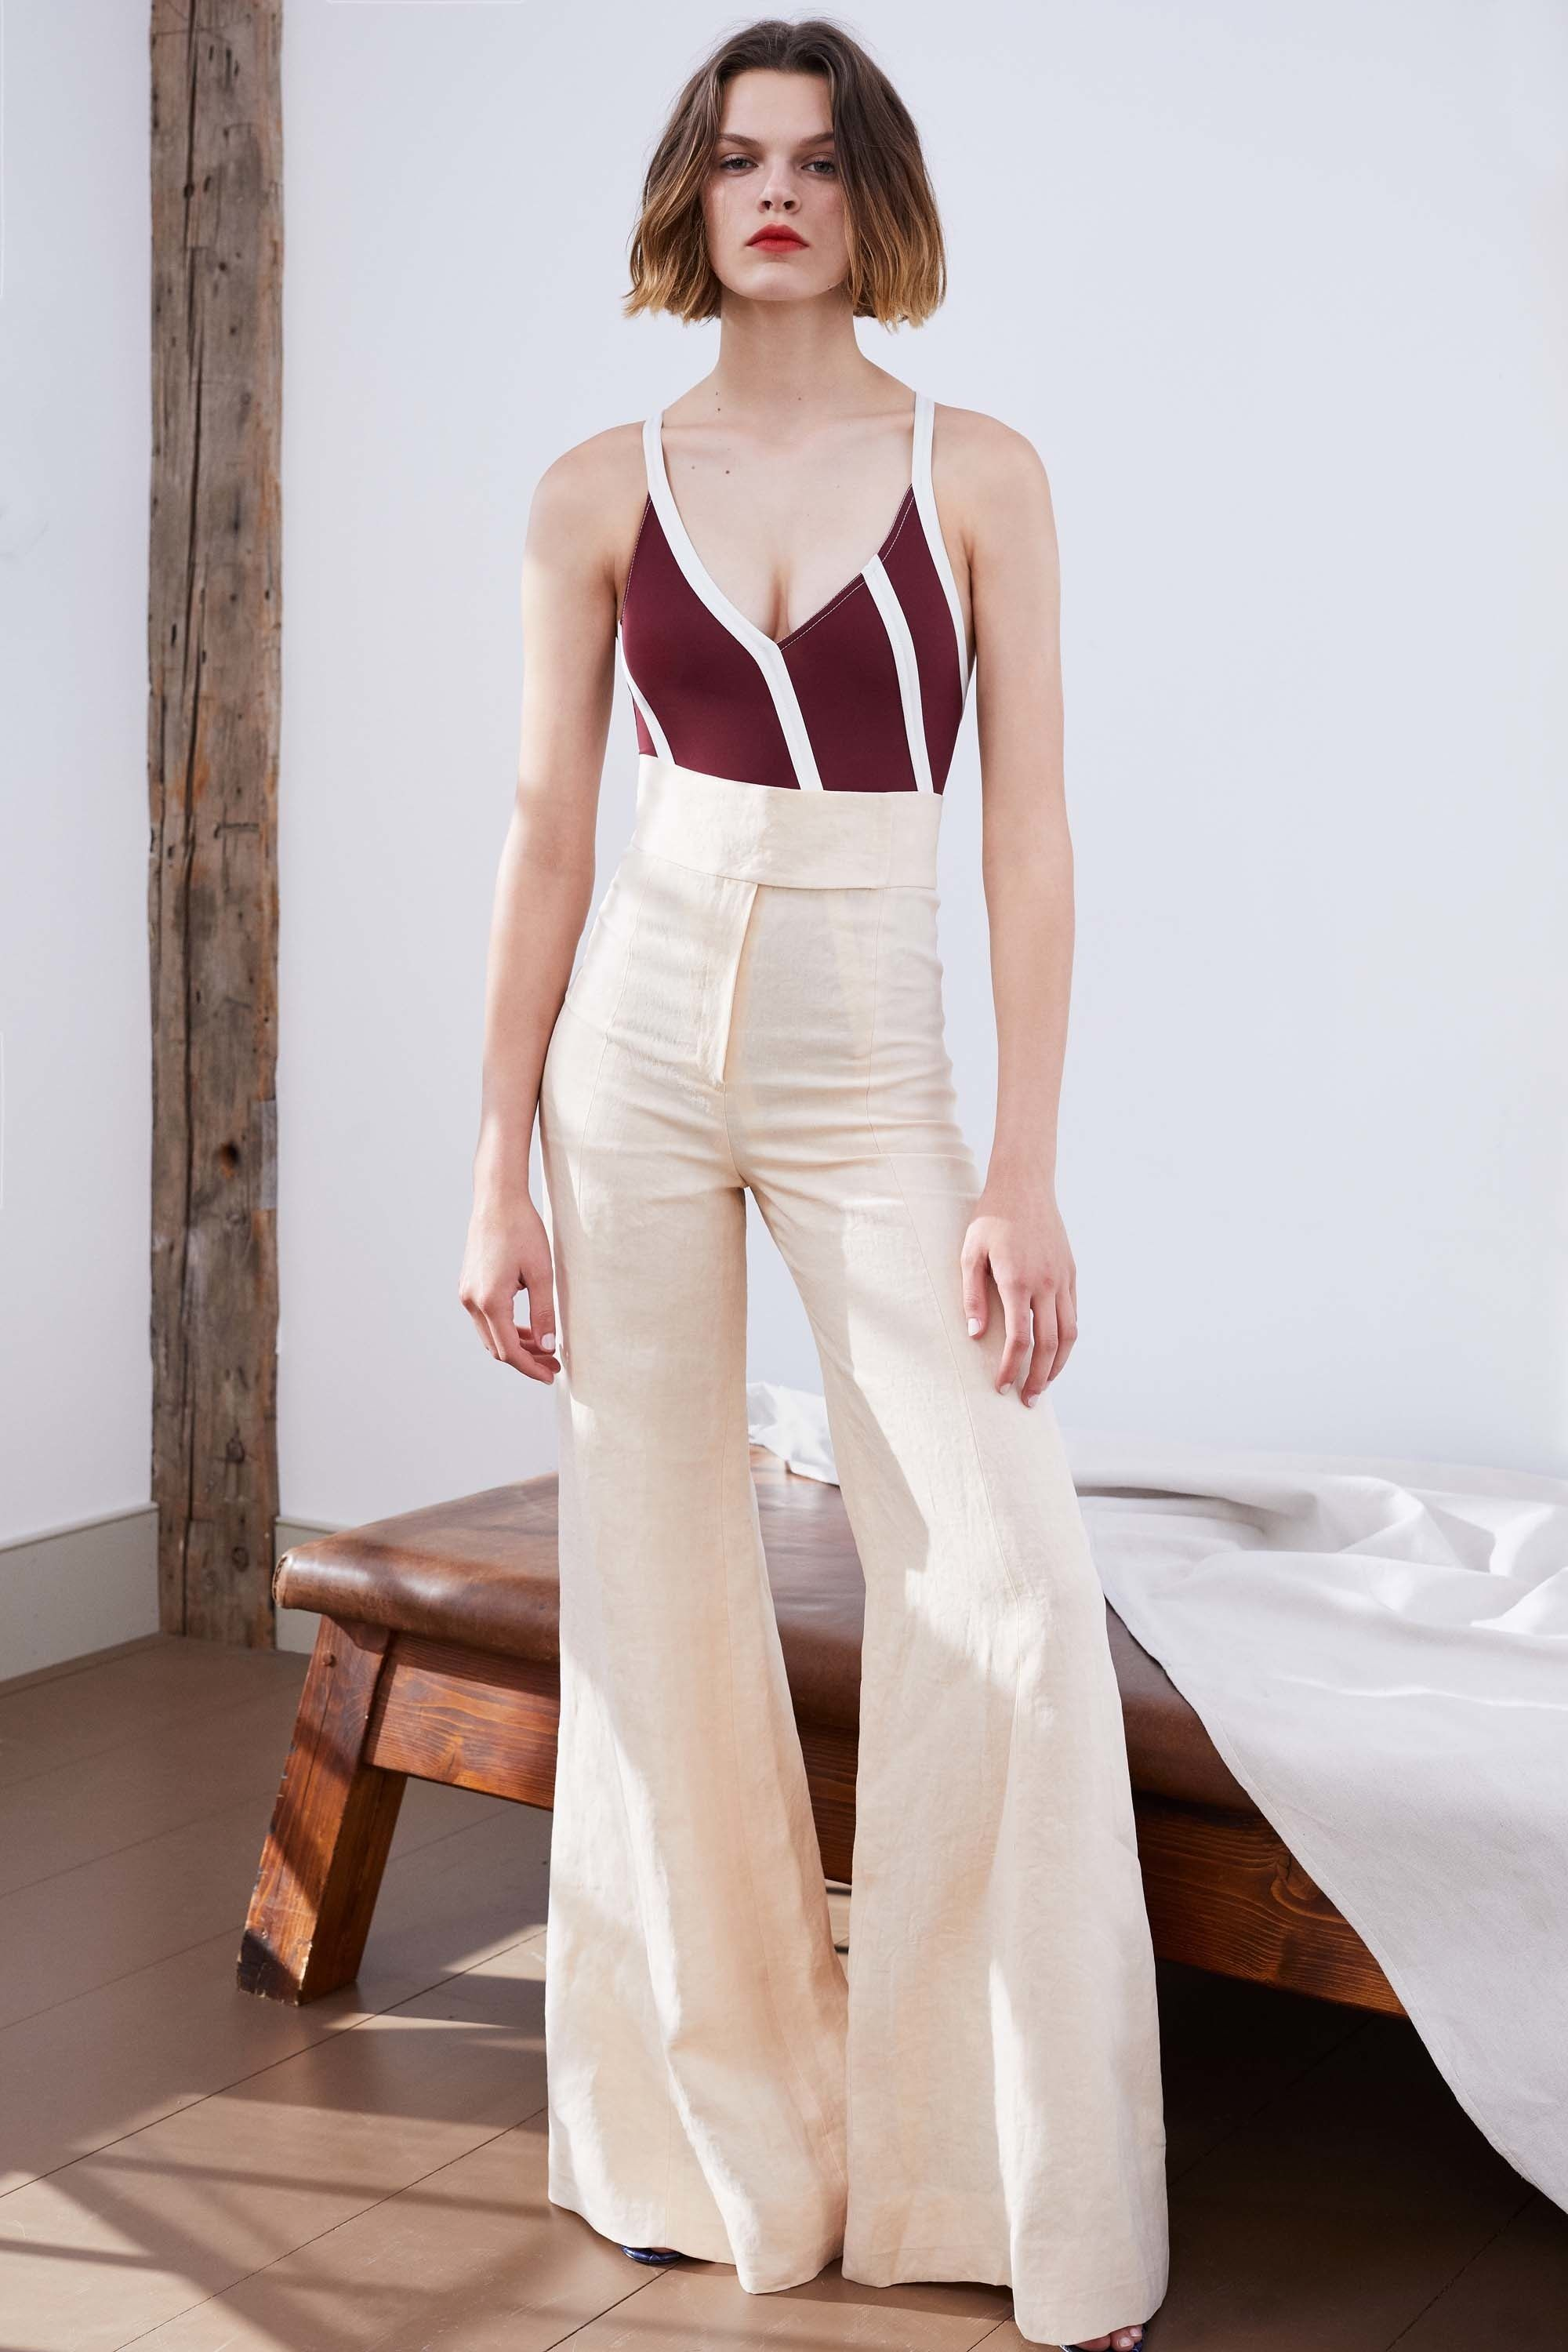 315431aed2b Hazel Super High Waist Pant by Jill Stuart. Jill Stuart Resort 2018  Collection Photos - Vogue